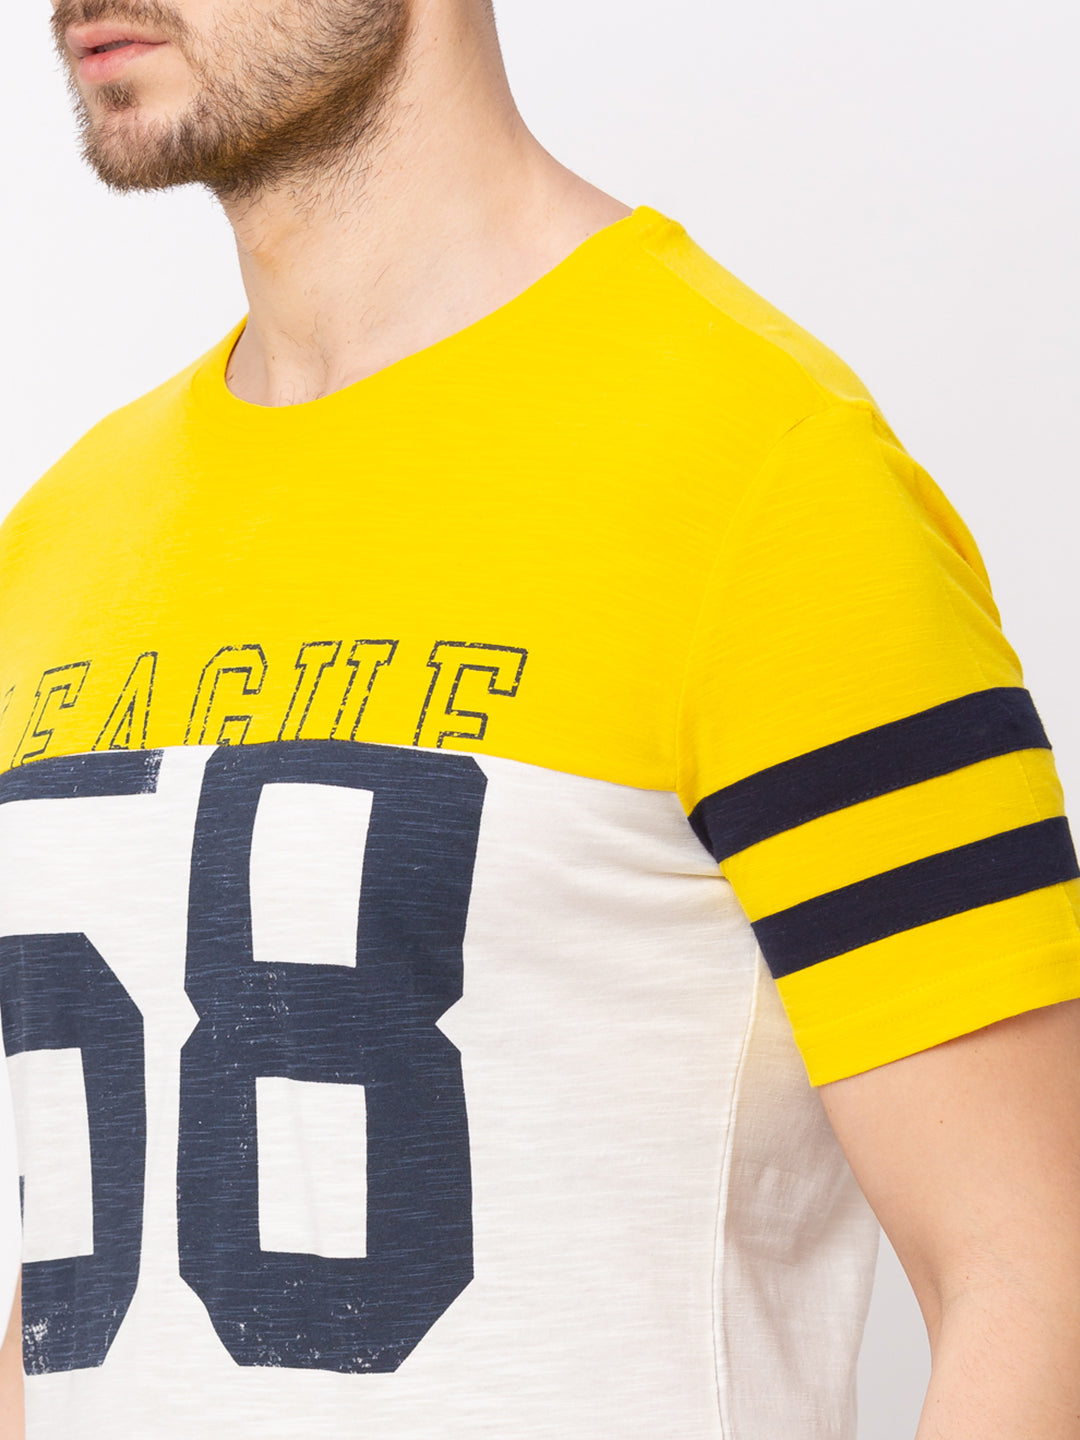 Globus Yellow Printed T-Shirt-4